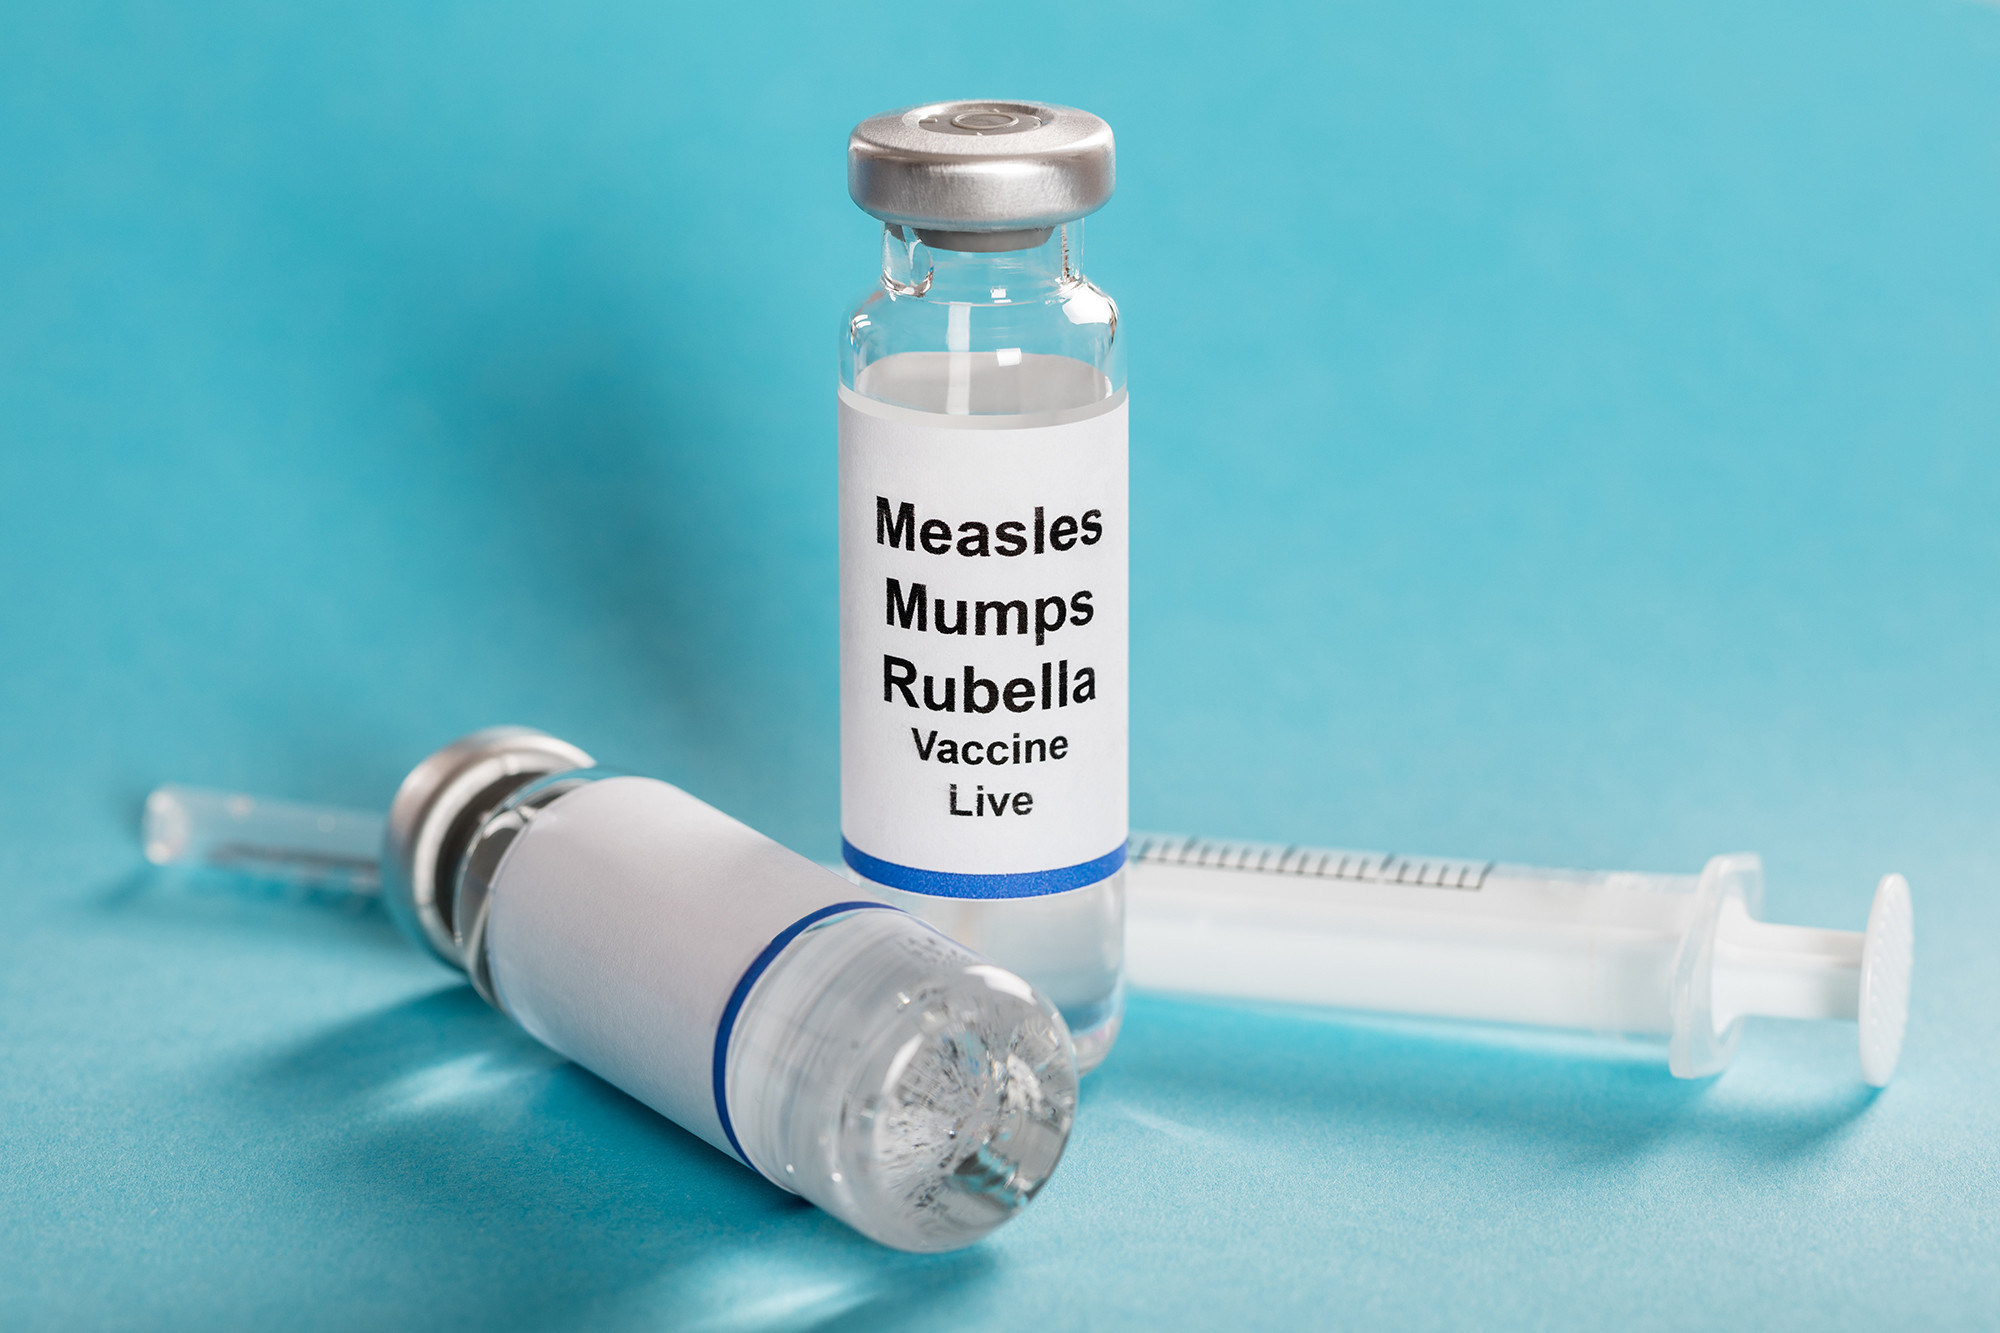 Measles: What you need to know about vaccines, outbreaks and staying safe